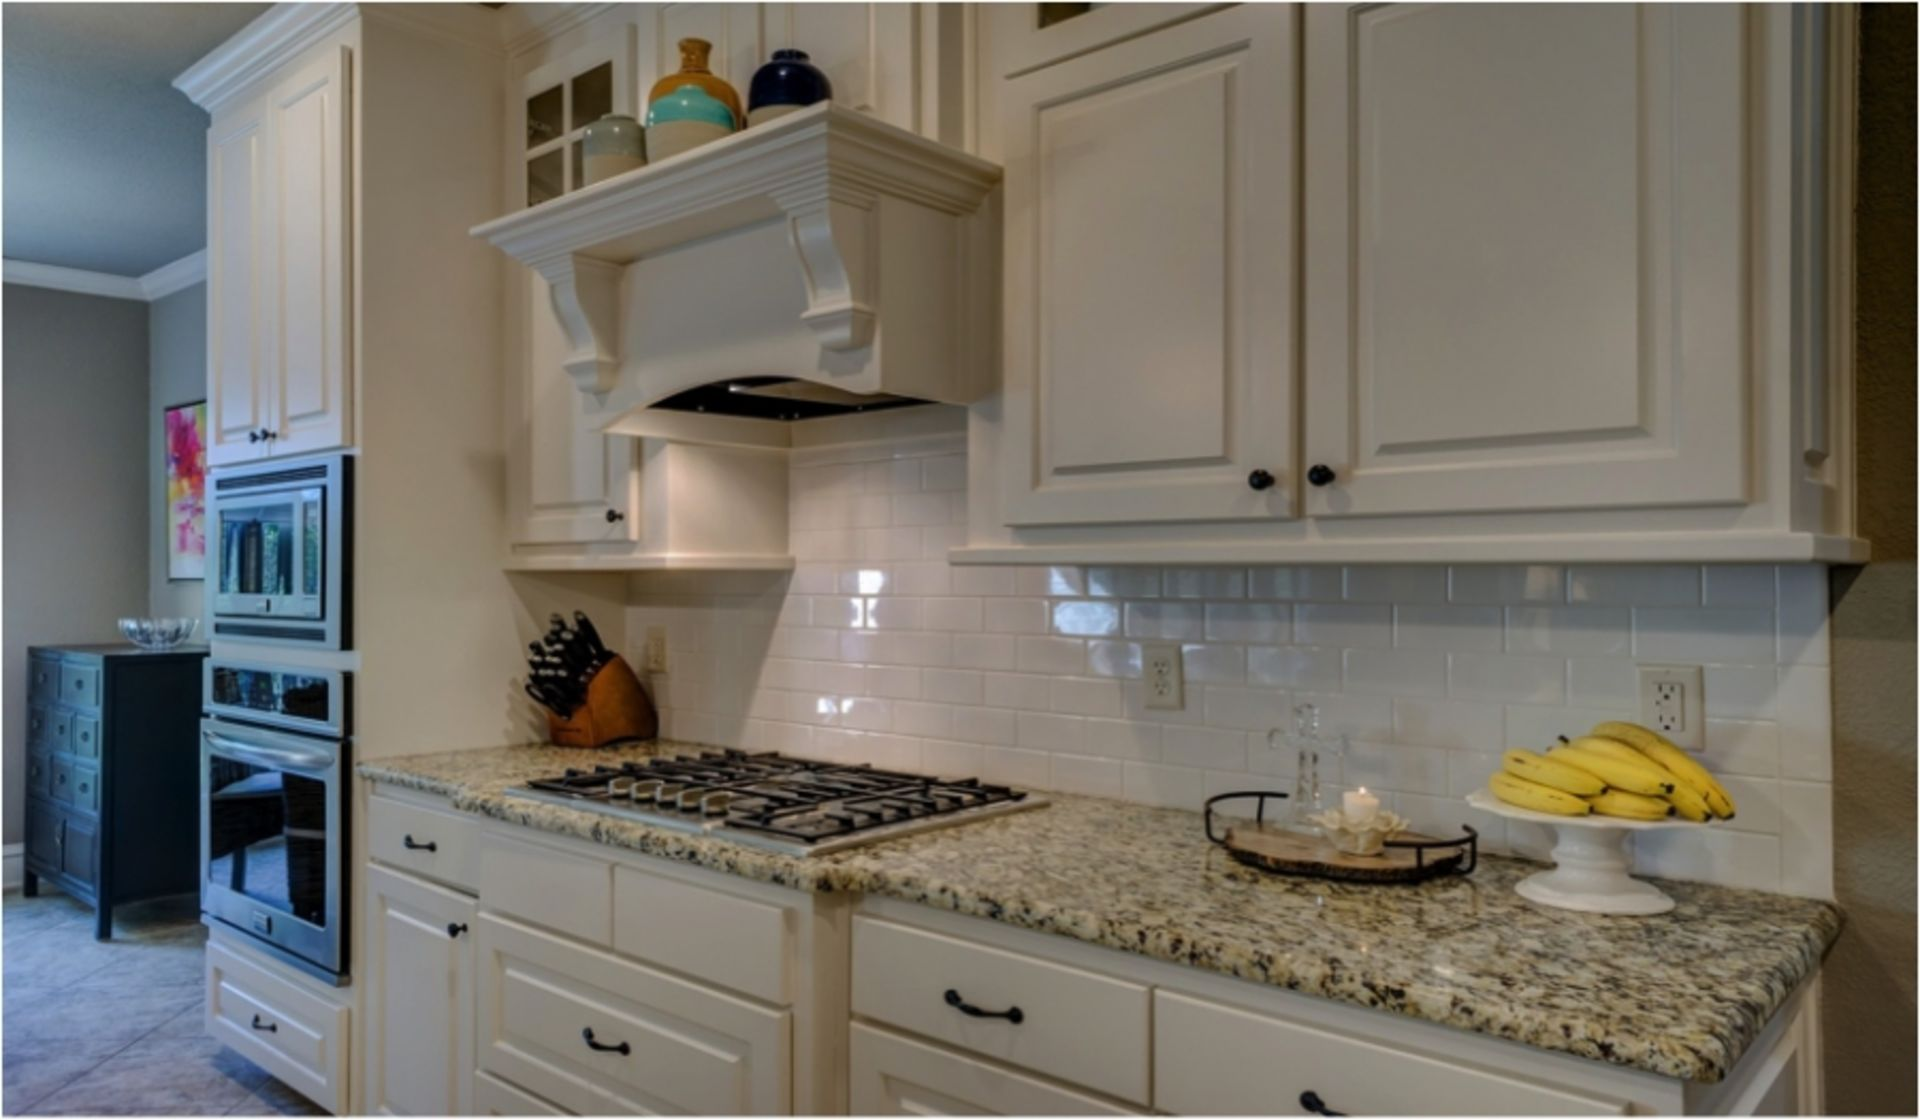 Kitchen Cabinets: Paint 'em Yourself or Pay a Contractor?